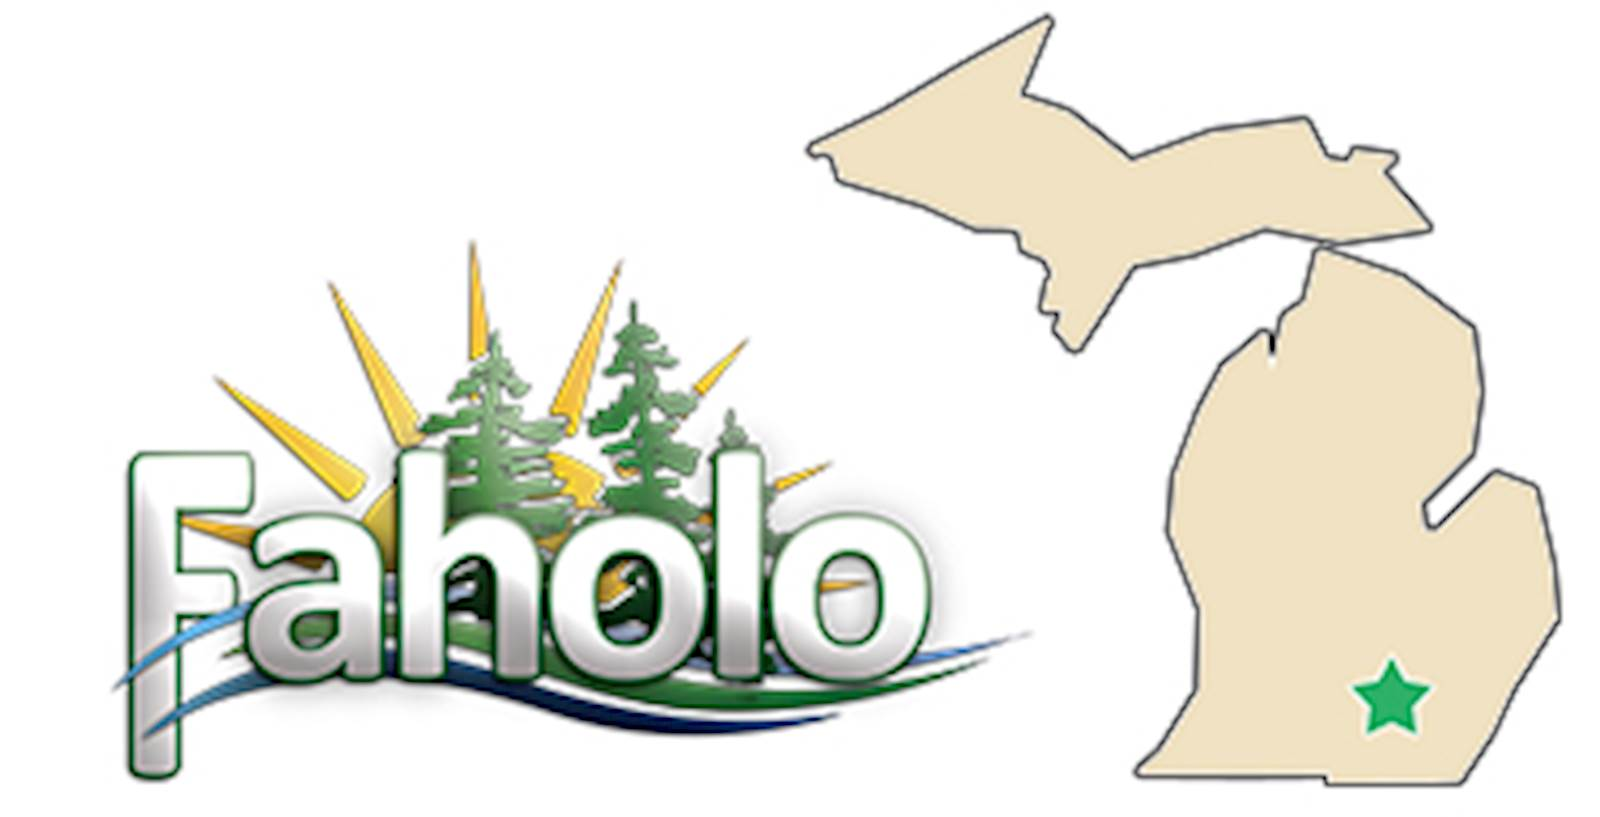 Faholo – Detroit Region Conference Center - logo and link